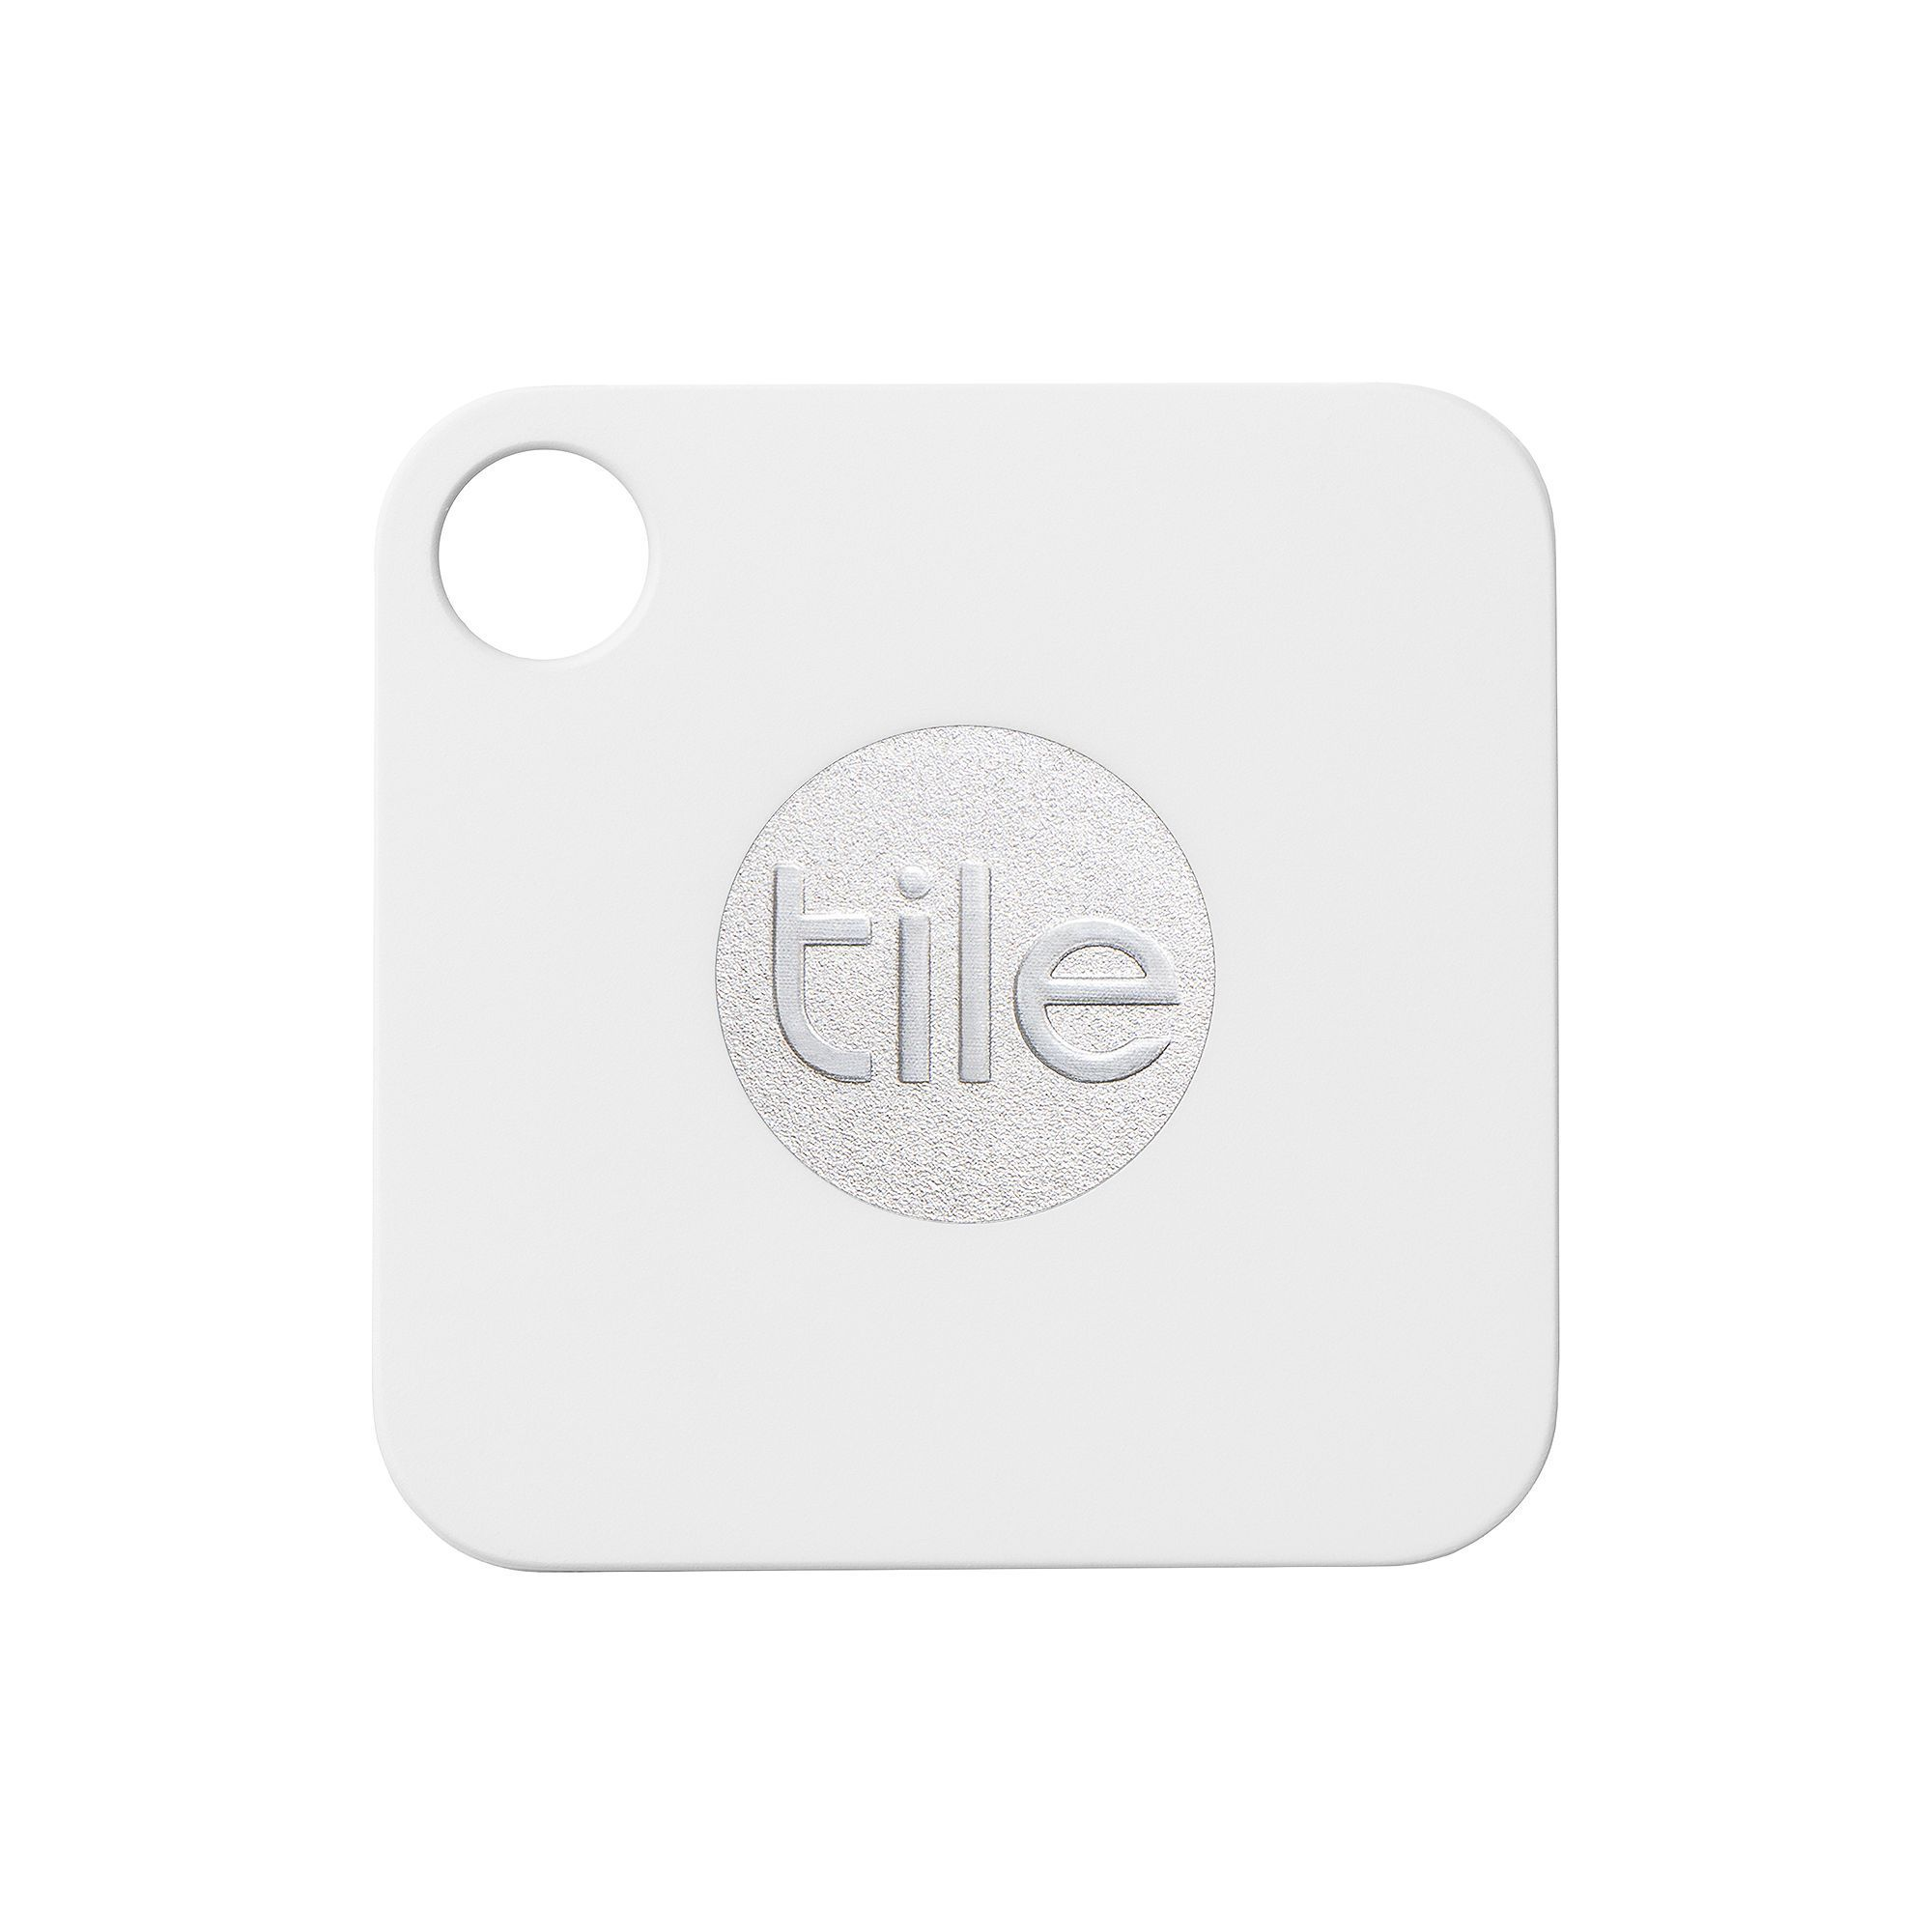 Tile Mate Item Tracker Gps tracking, Htc one m8, Samsung